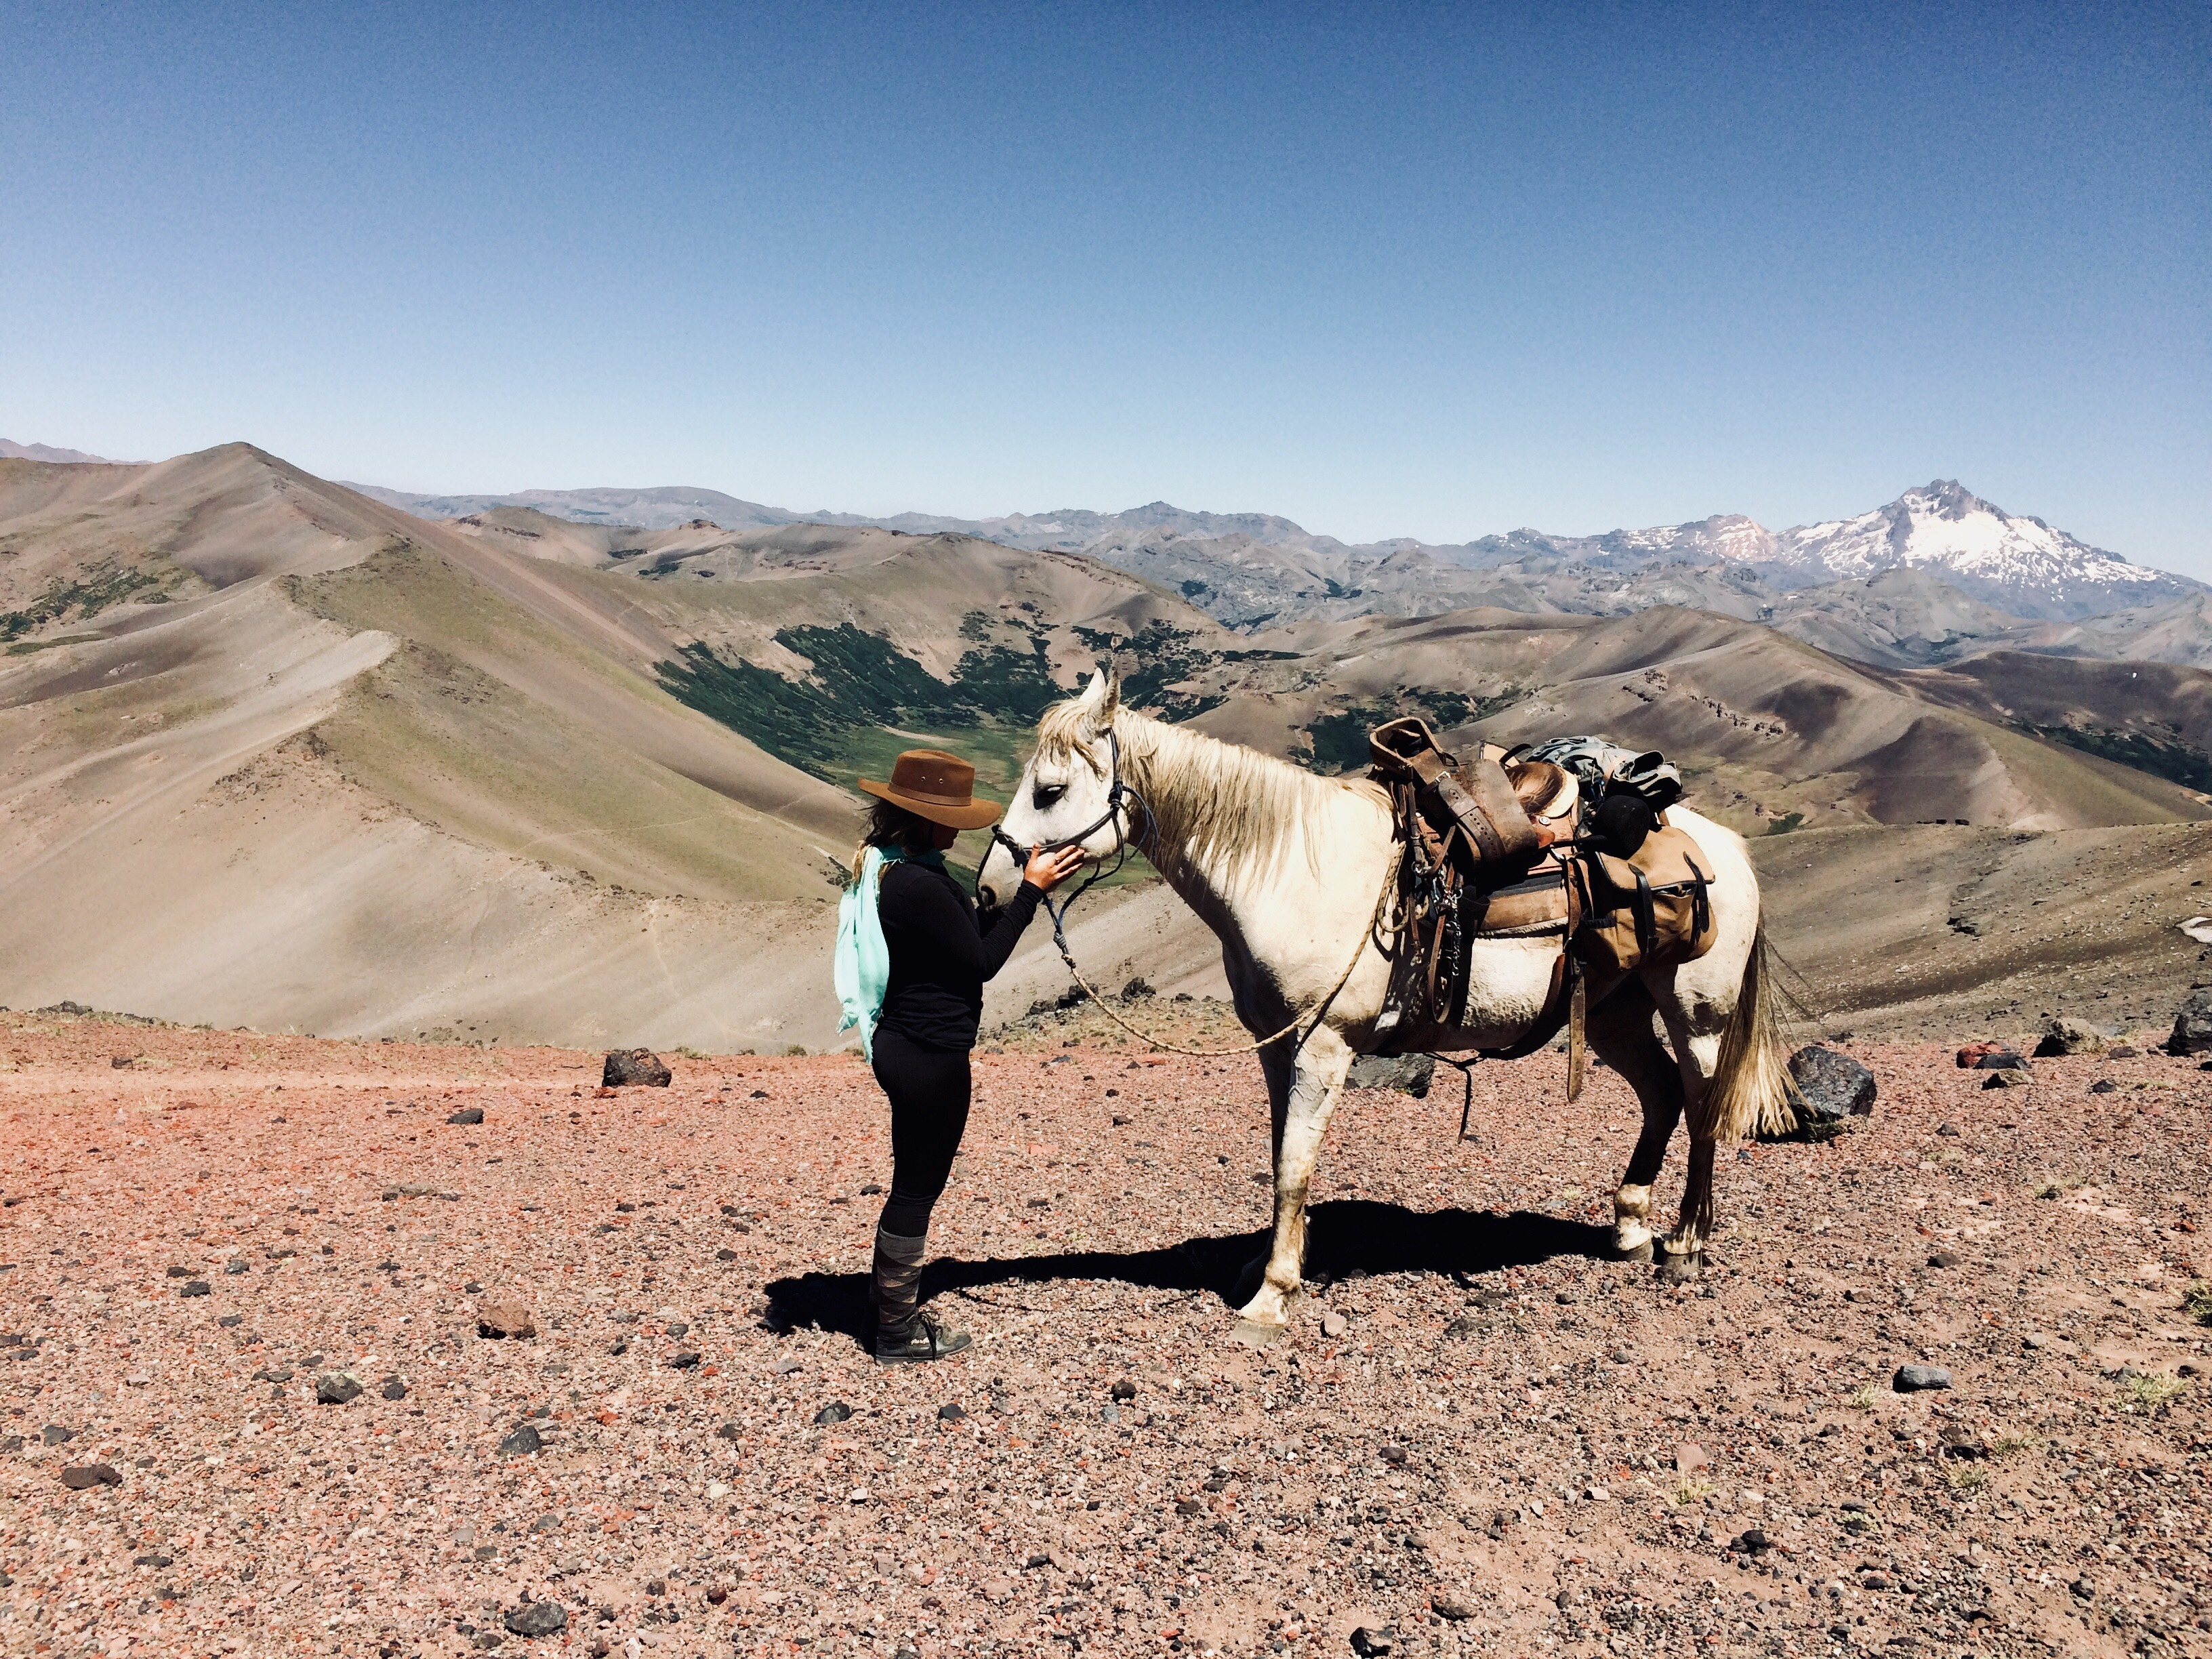 Woman and criollo horse on mountain summit in the Andes